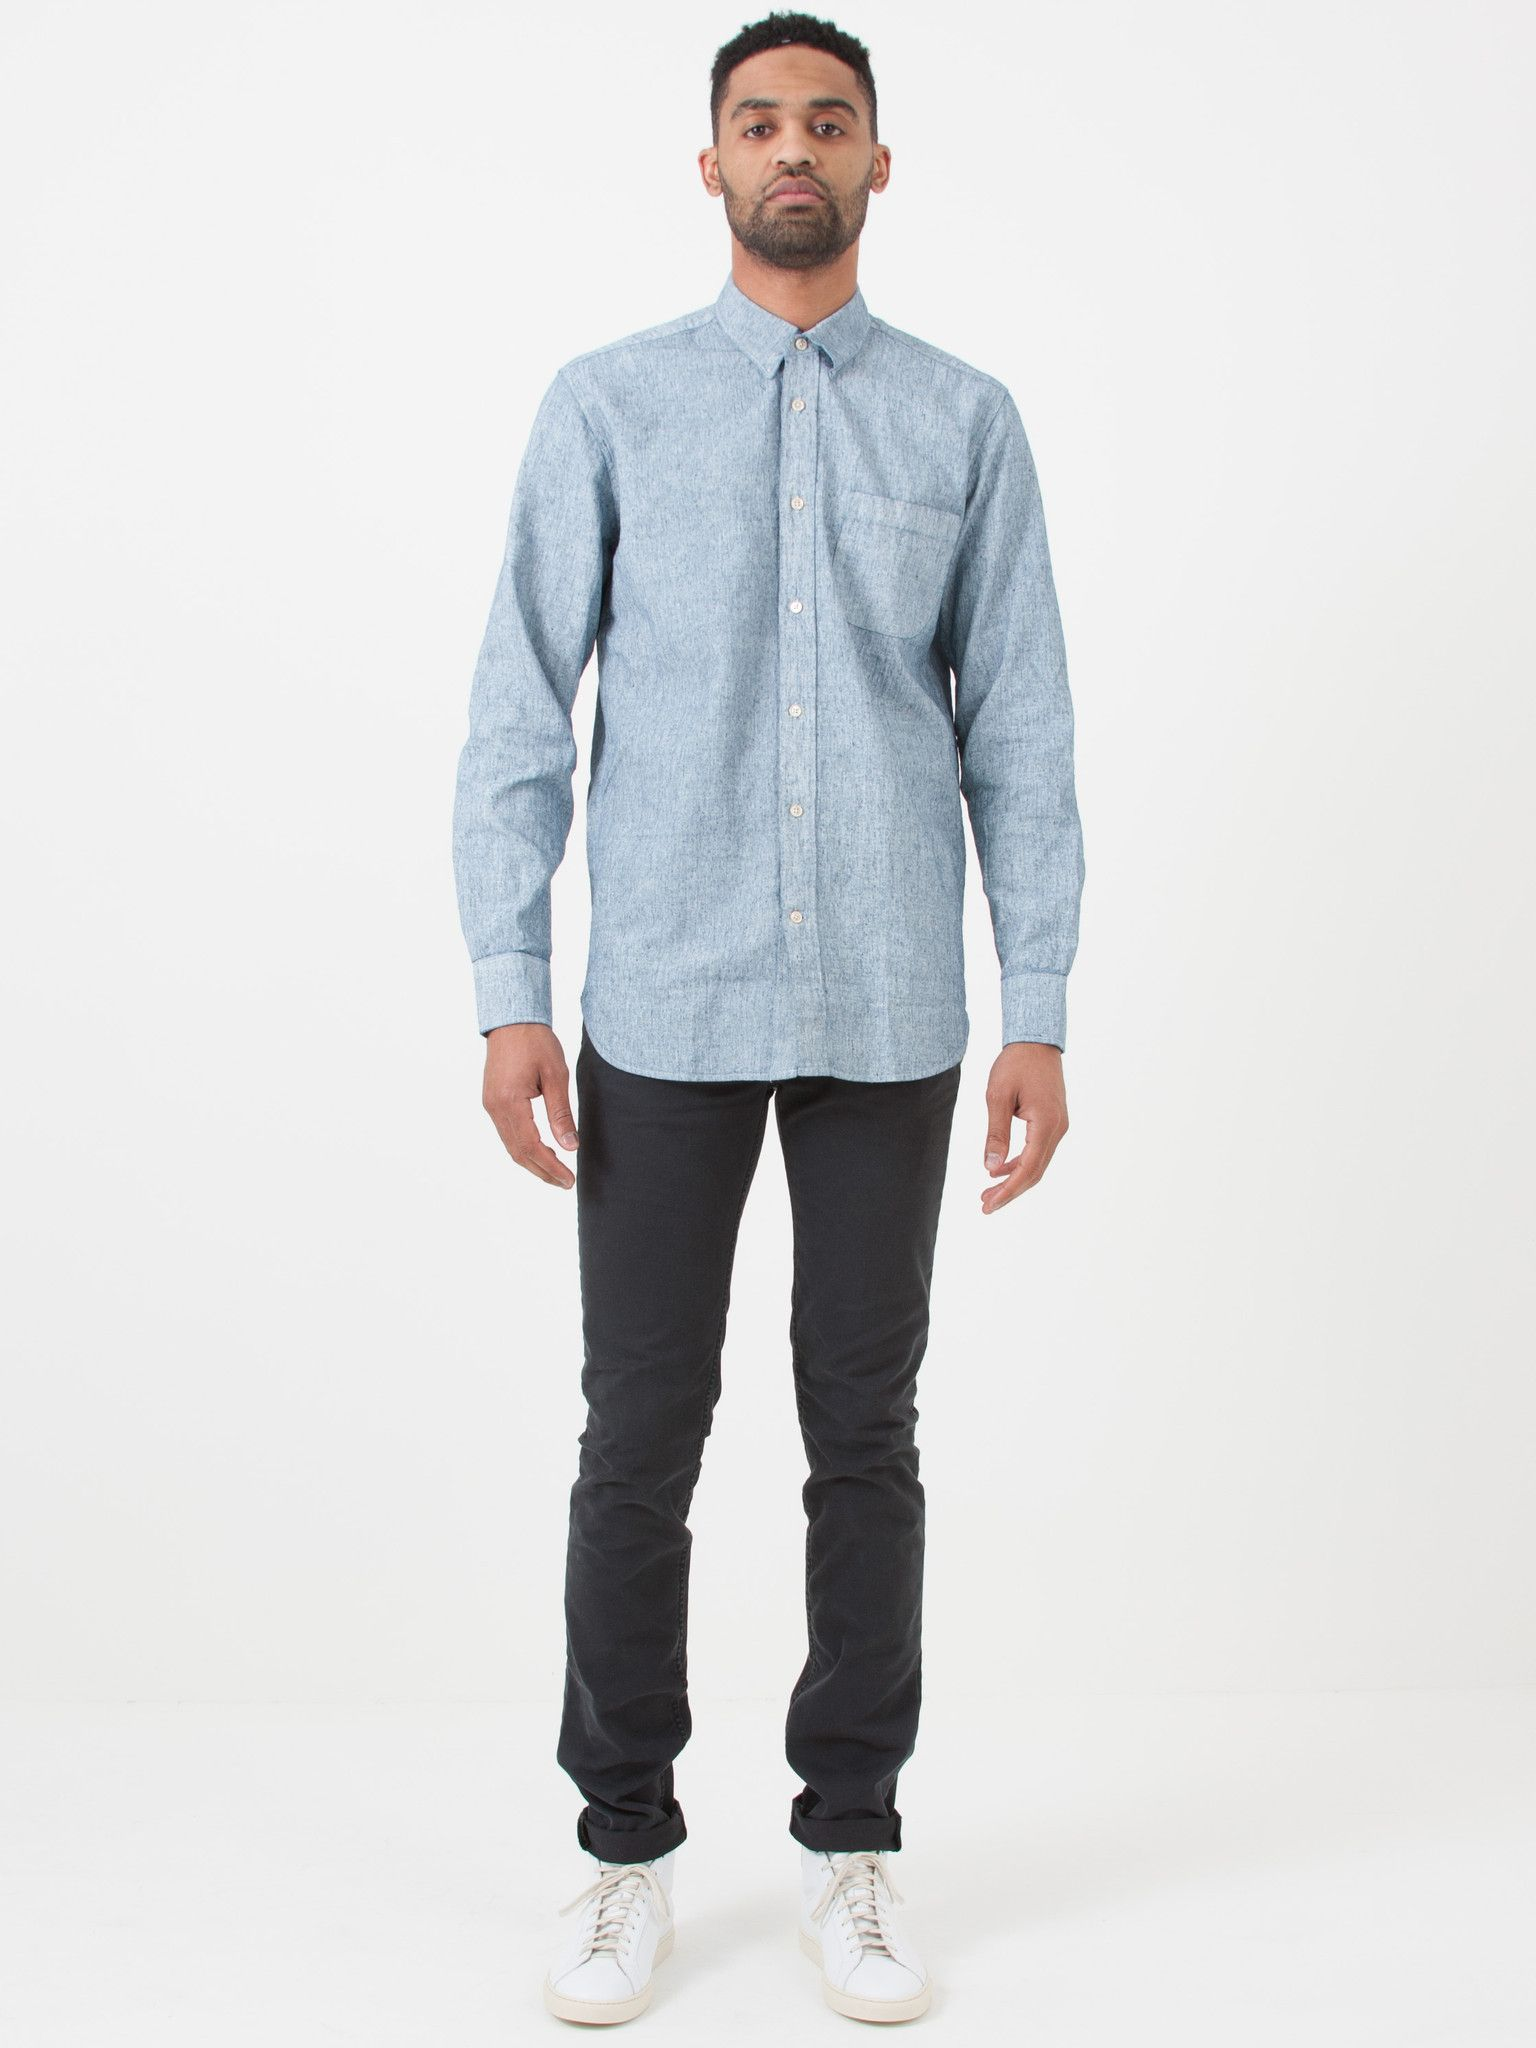 Our Legacy Coated White Generation Shirt